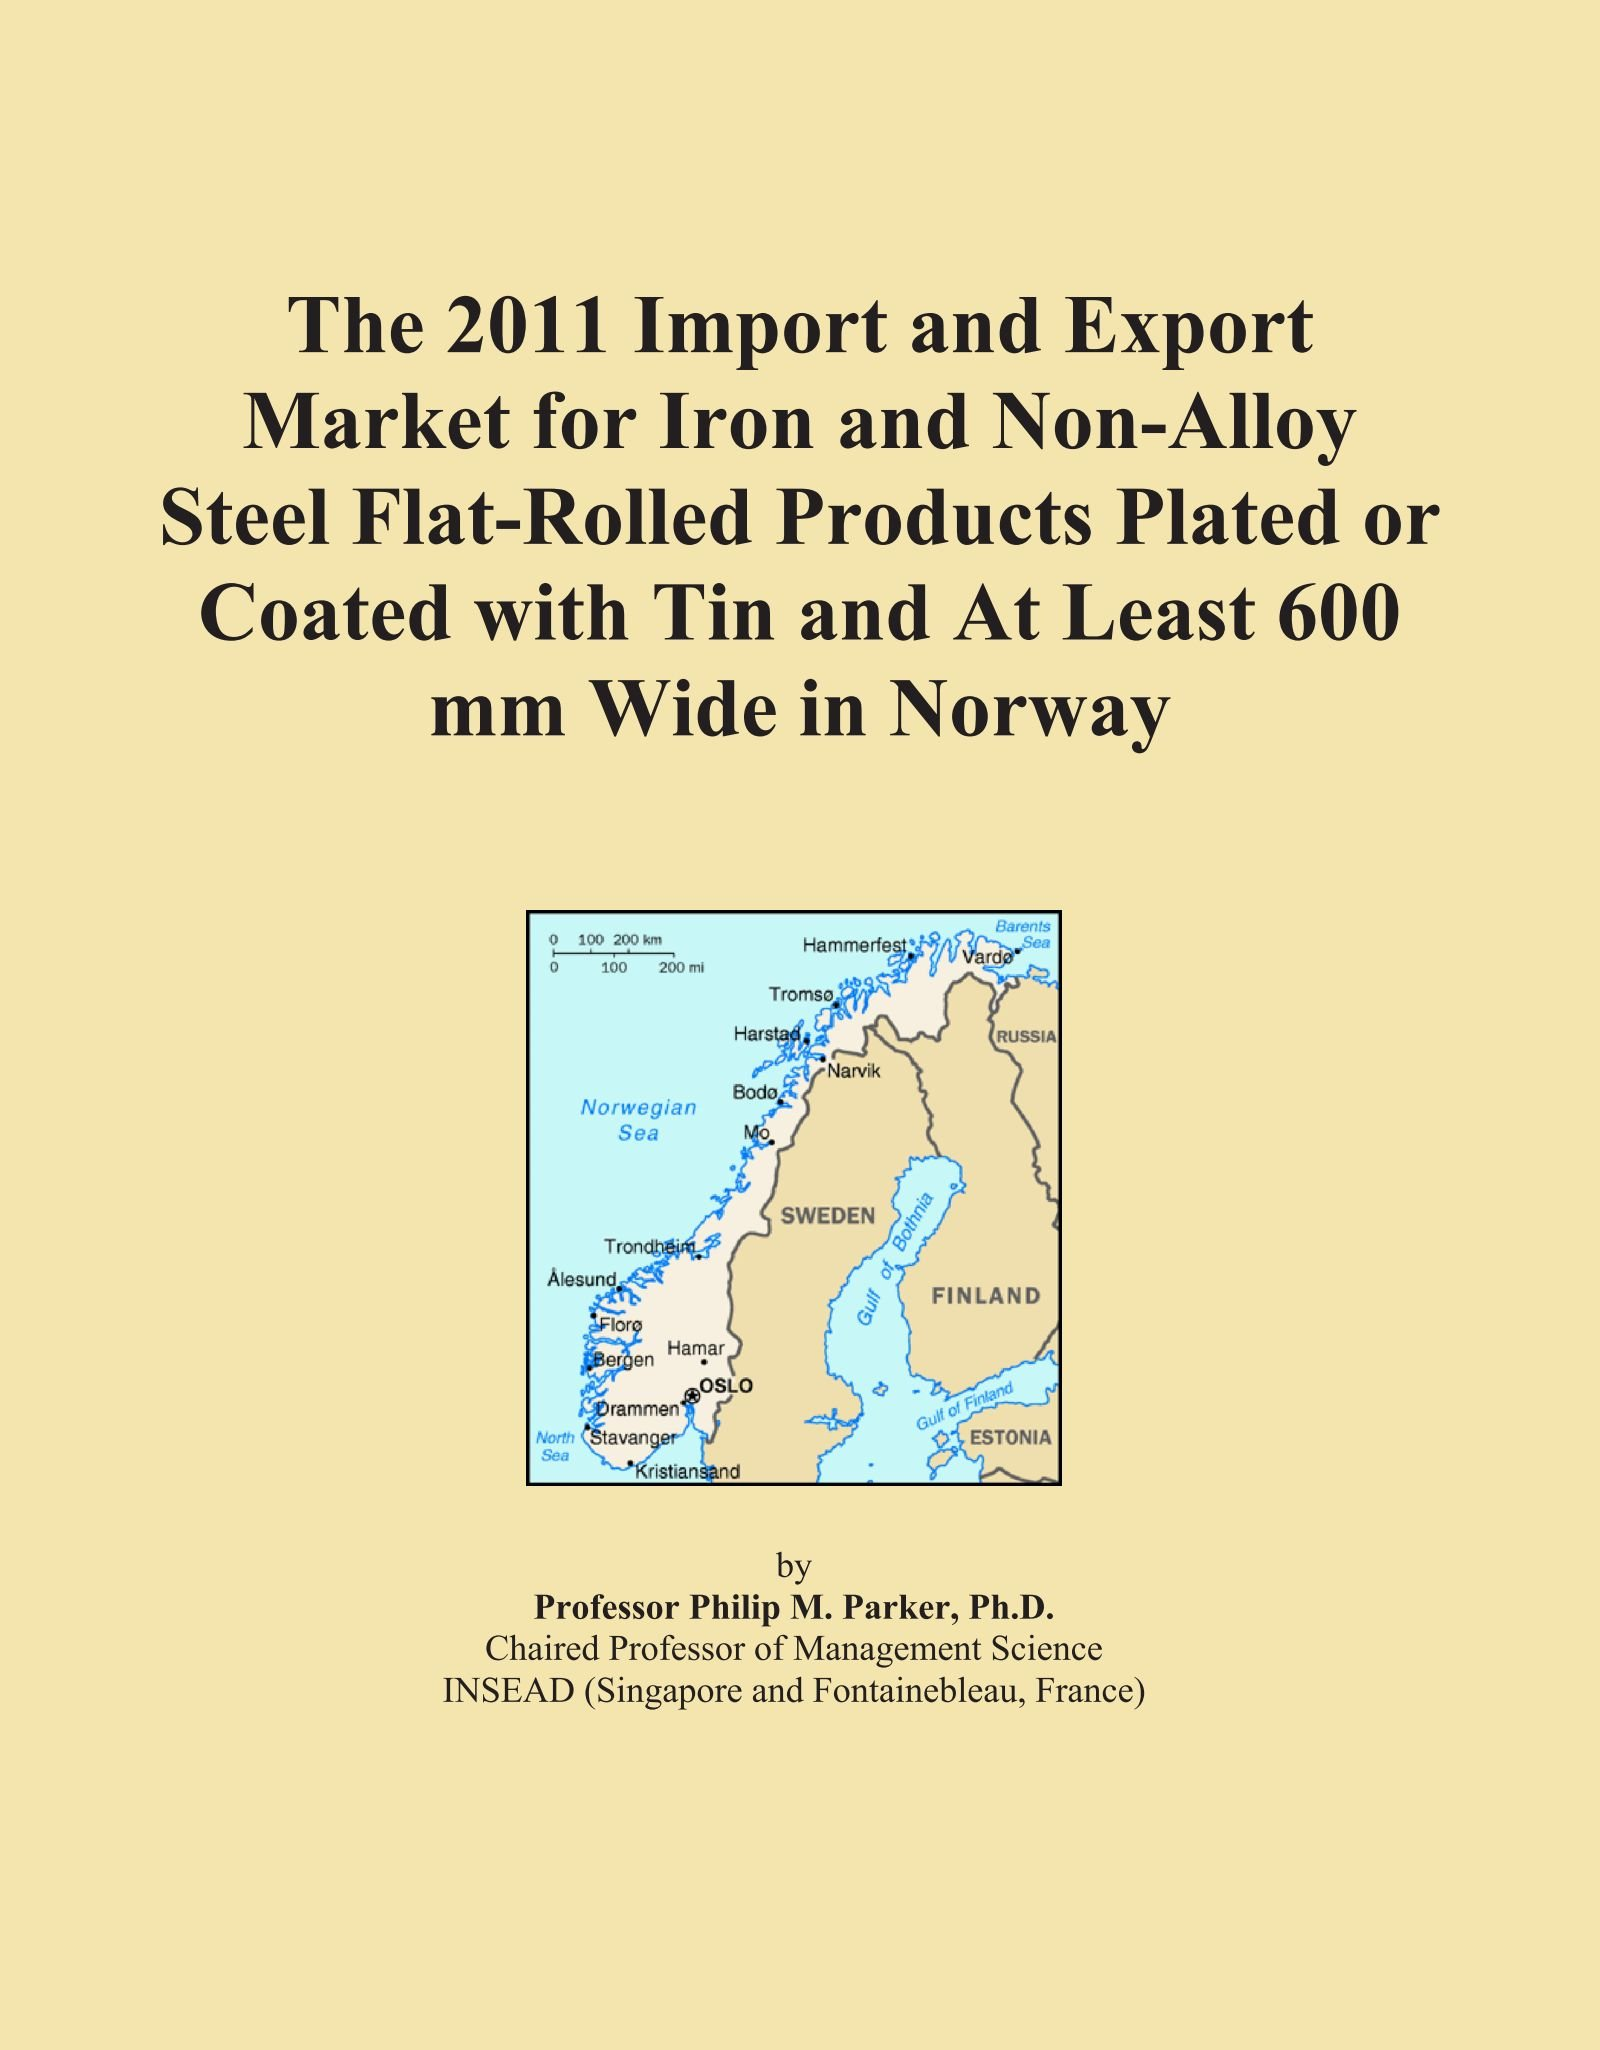 The 2011 Import and Export Market for Iron and Non-Alloy Steel Flat-Rolled Products Plated or Coated with Tin and At Least 600 mm Wide in Norway ebook